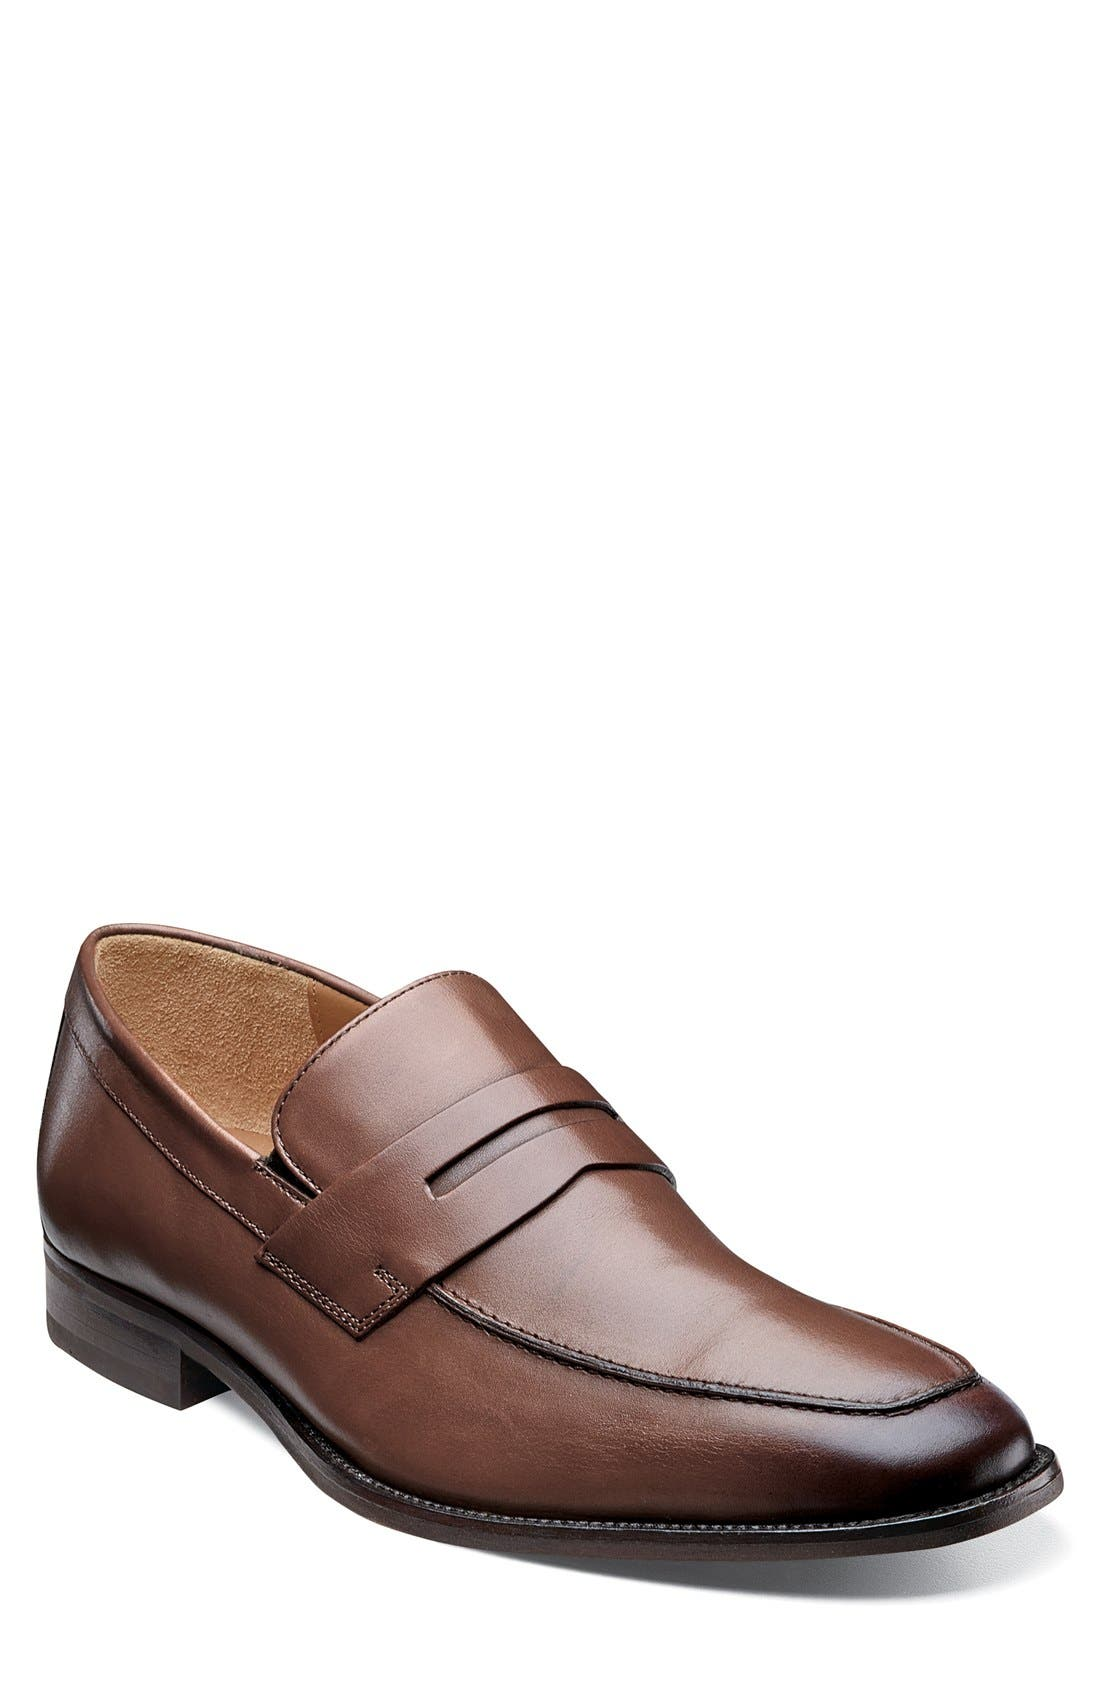 Alternate Image 1 Selected - Florsheim 'Sabato' Penny Loafer (Men)